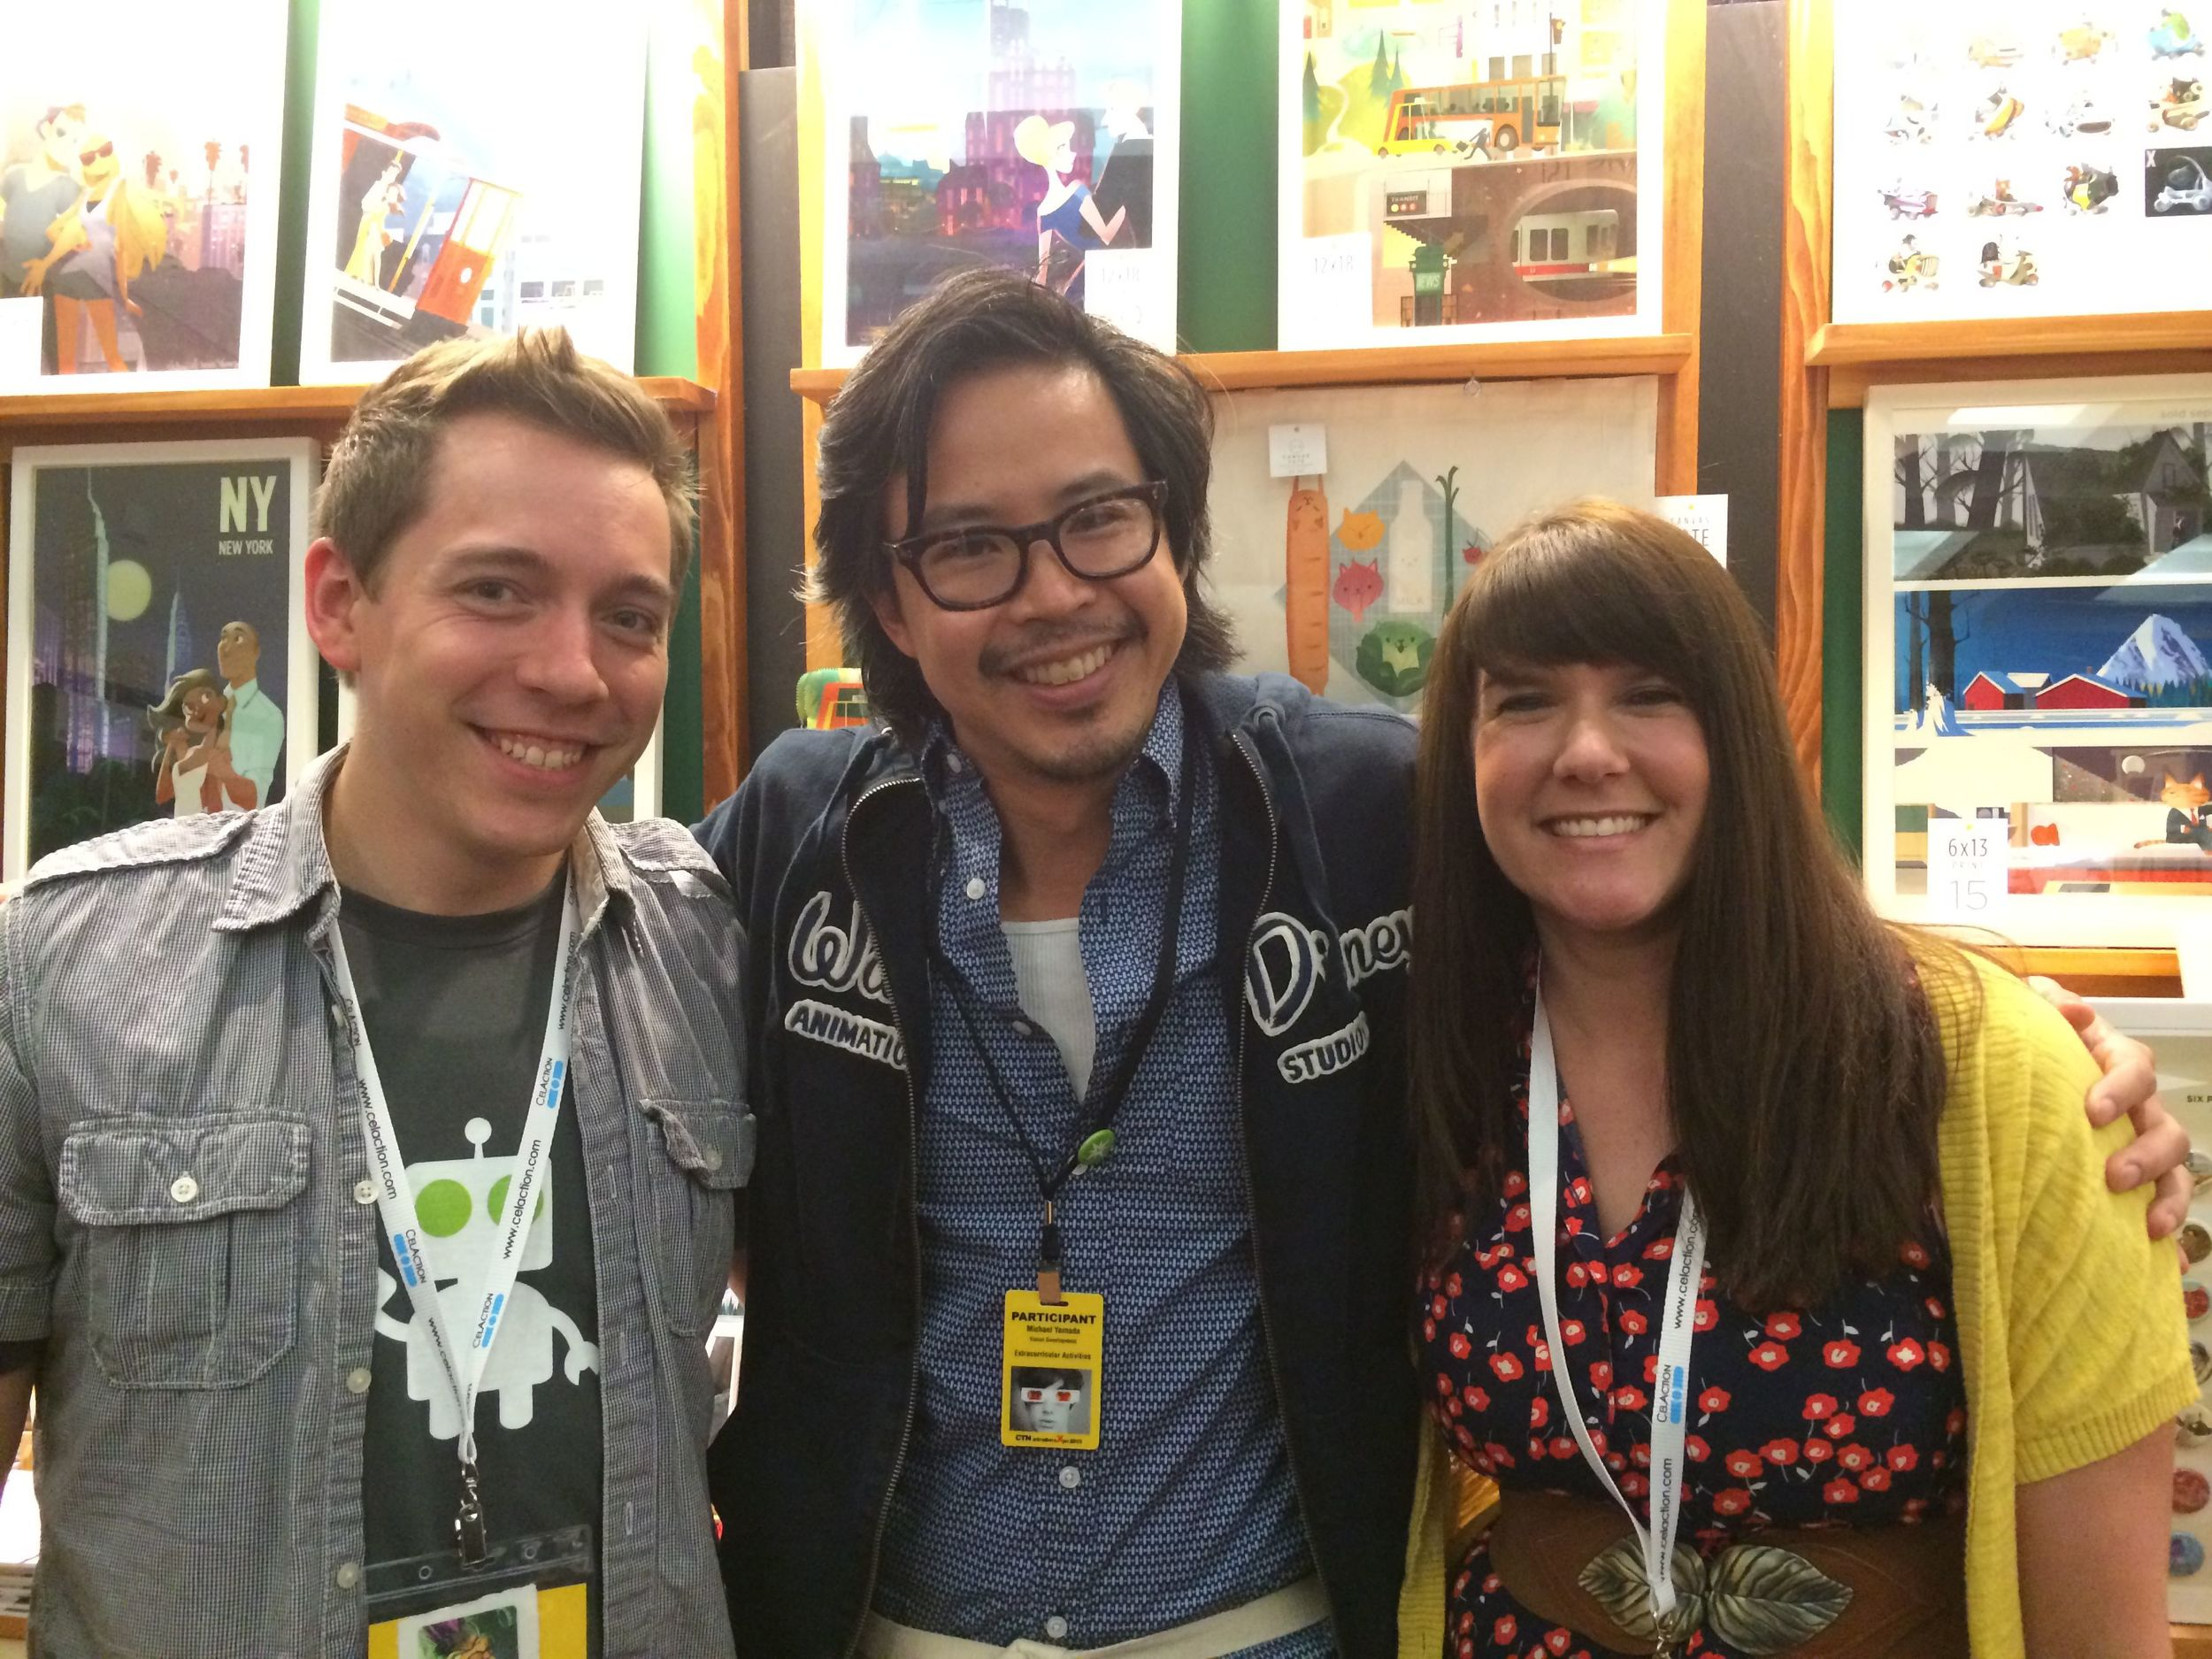 Mike Yamada (wish we got a pic of Vicky too - she was at the Disney booth)